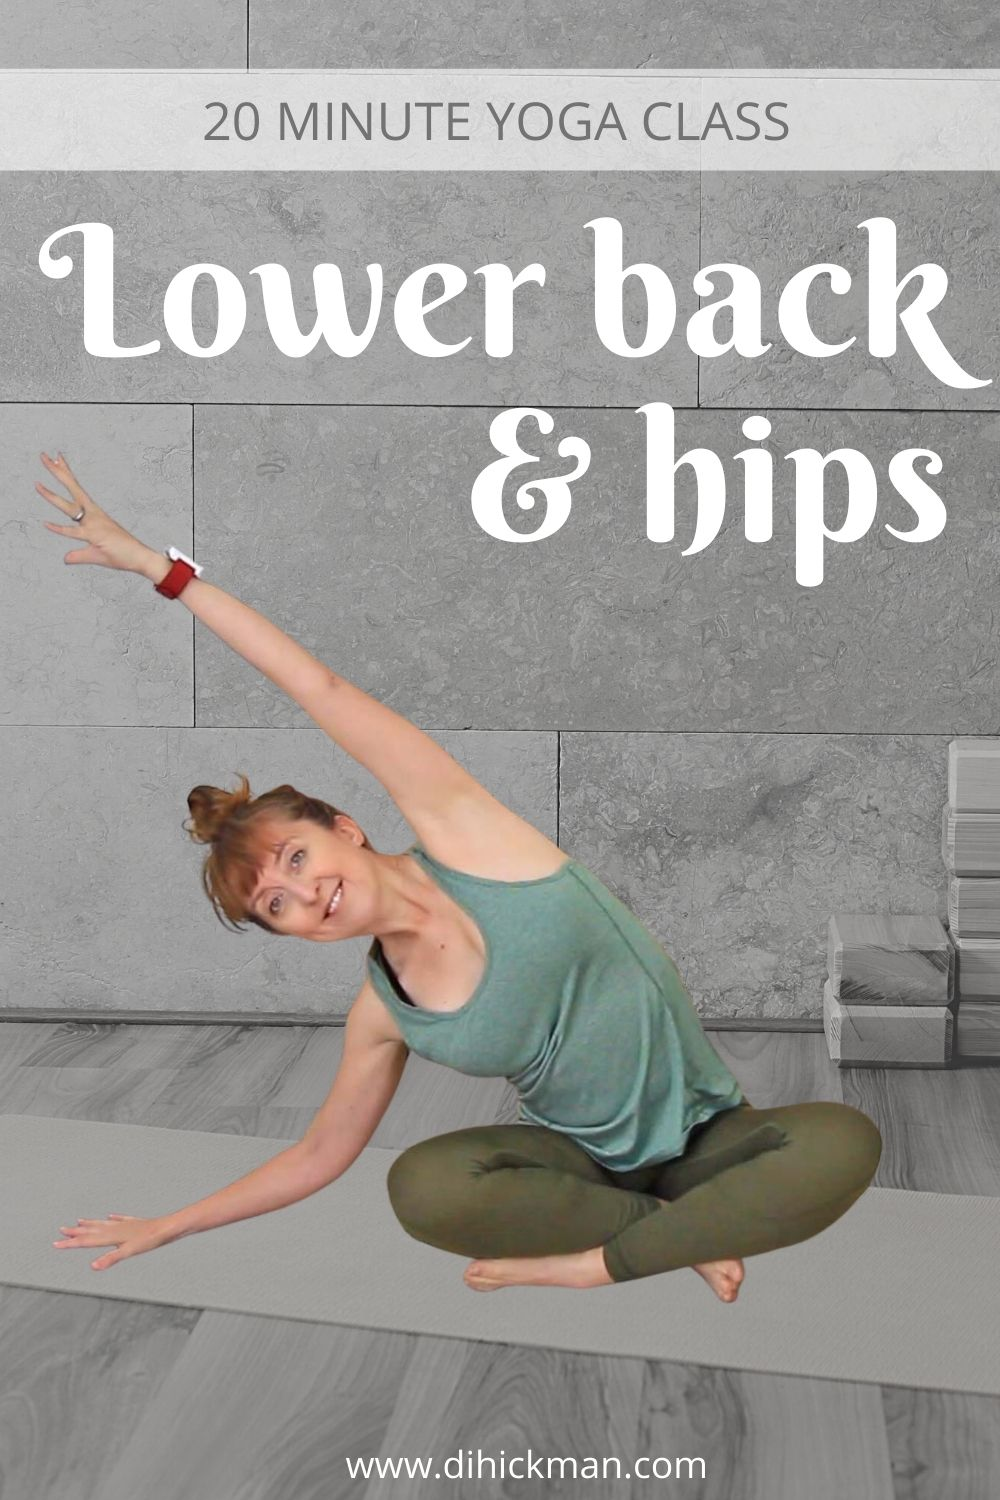 20 Minute Yoga Class for Lower Back & Hips